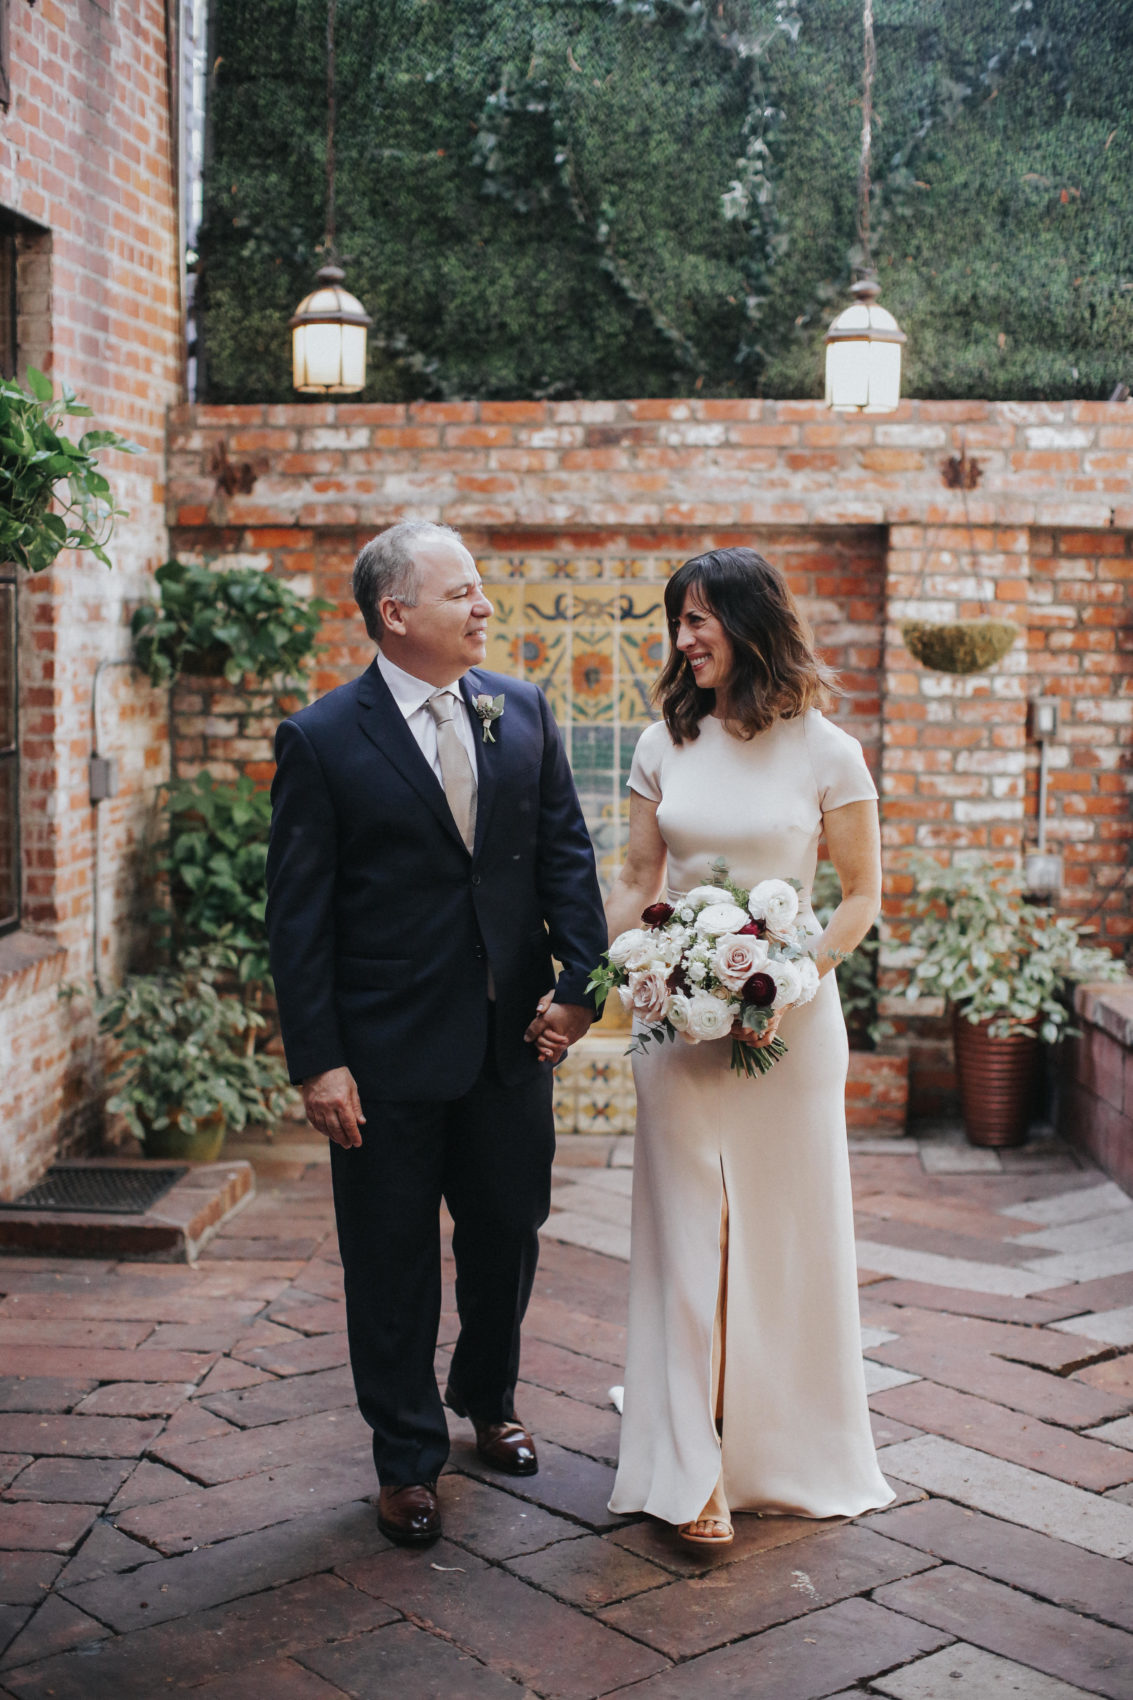 Laurie and Jonathan at their wedding, October 2018 (Credit: Jenny Smith & Co.)